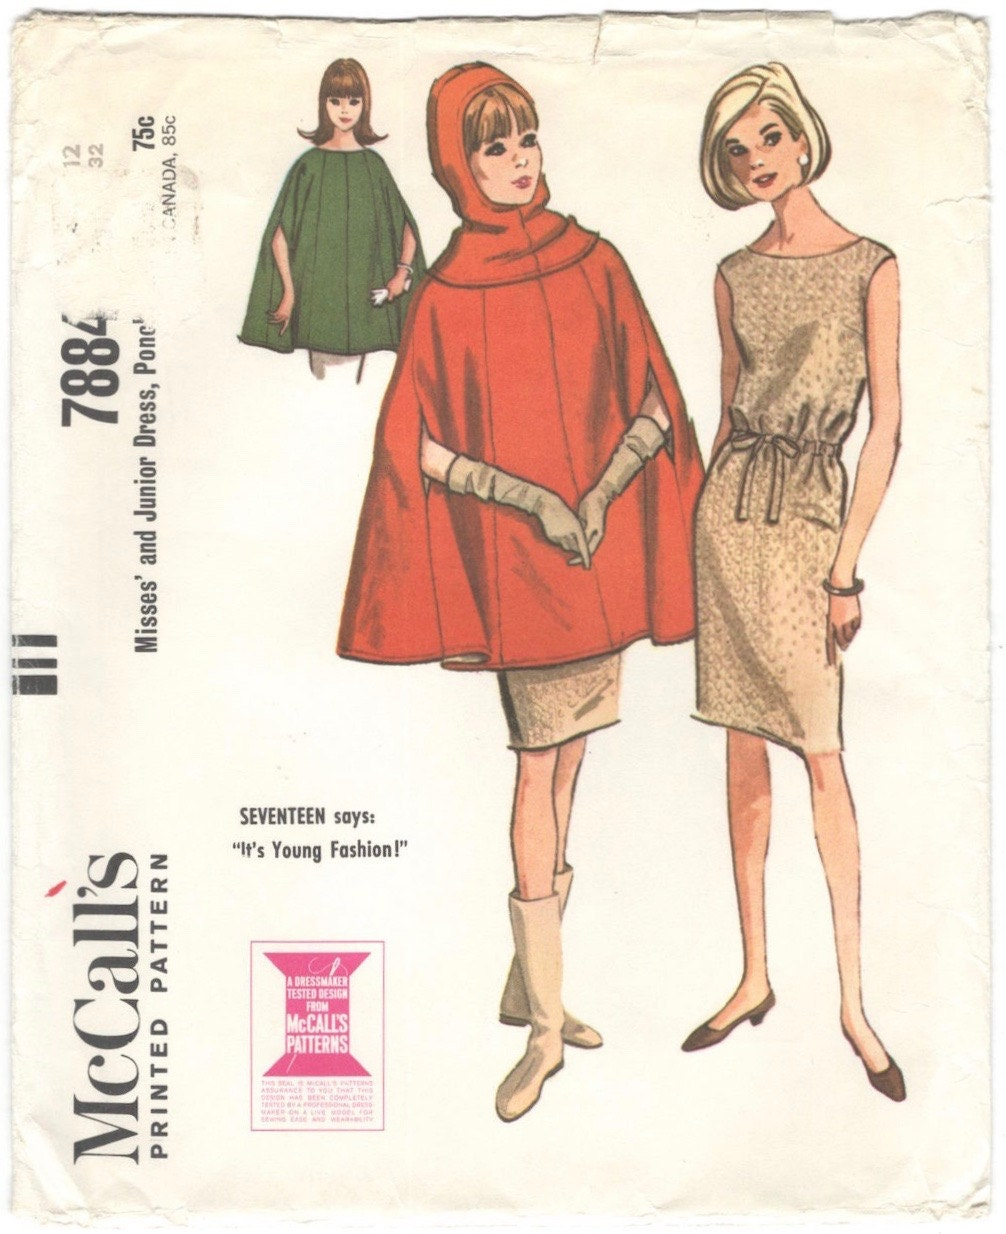 1960s poncho, hood, and dress pattern after Courrèges - McCall's 7884